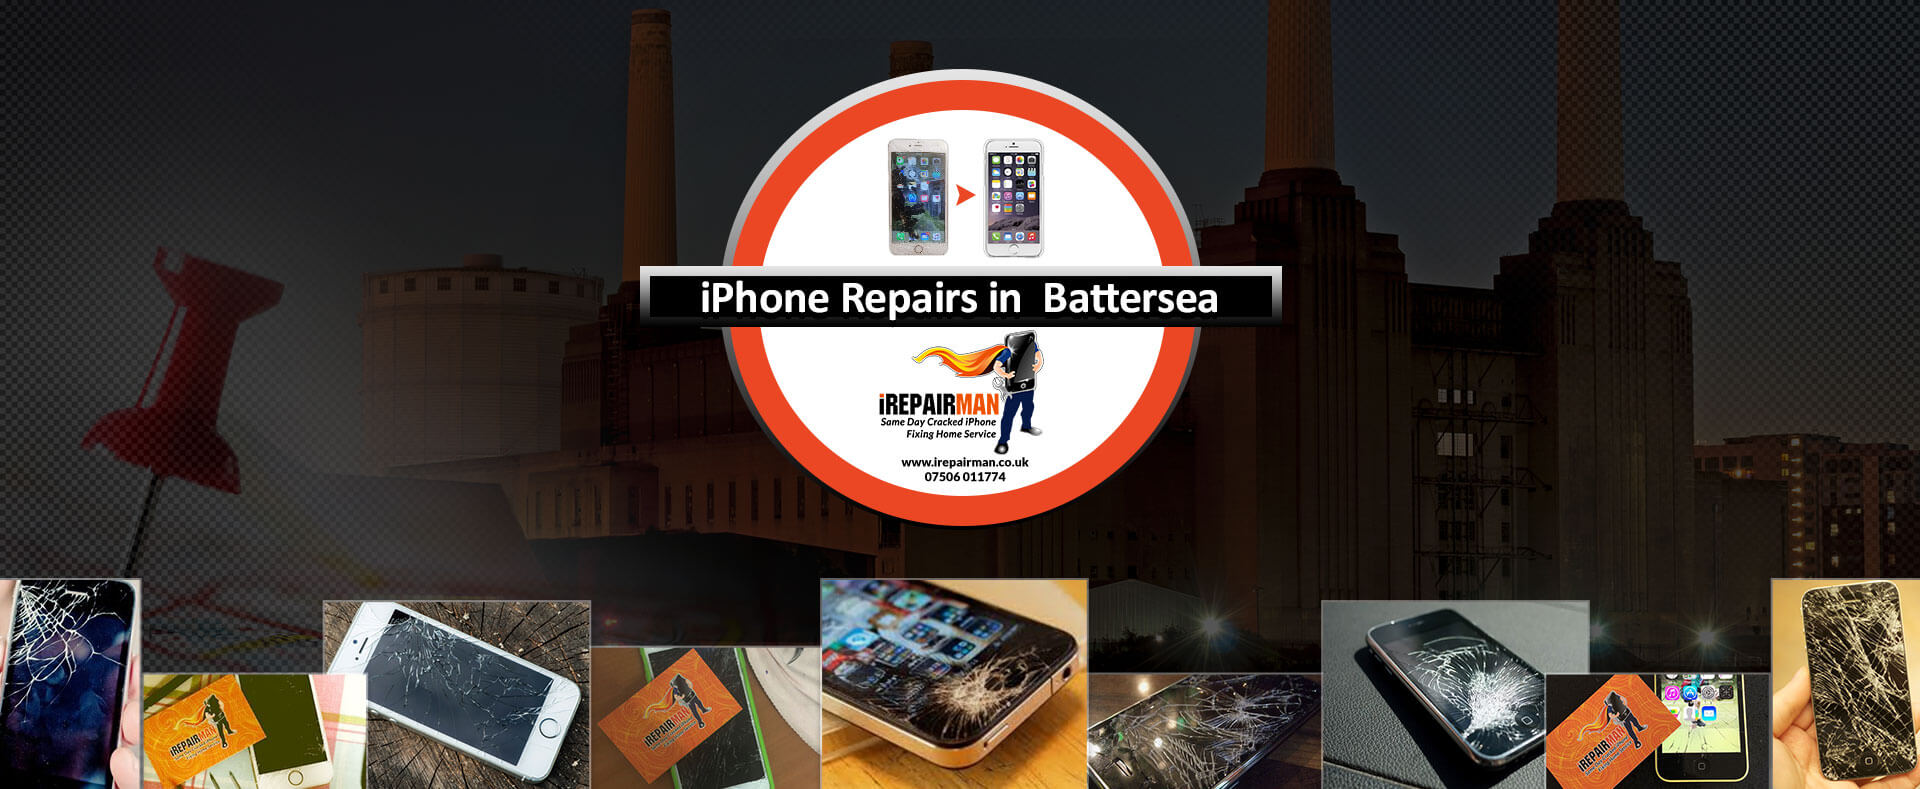 iPhone Repairs in Battersea